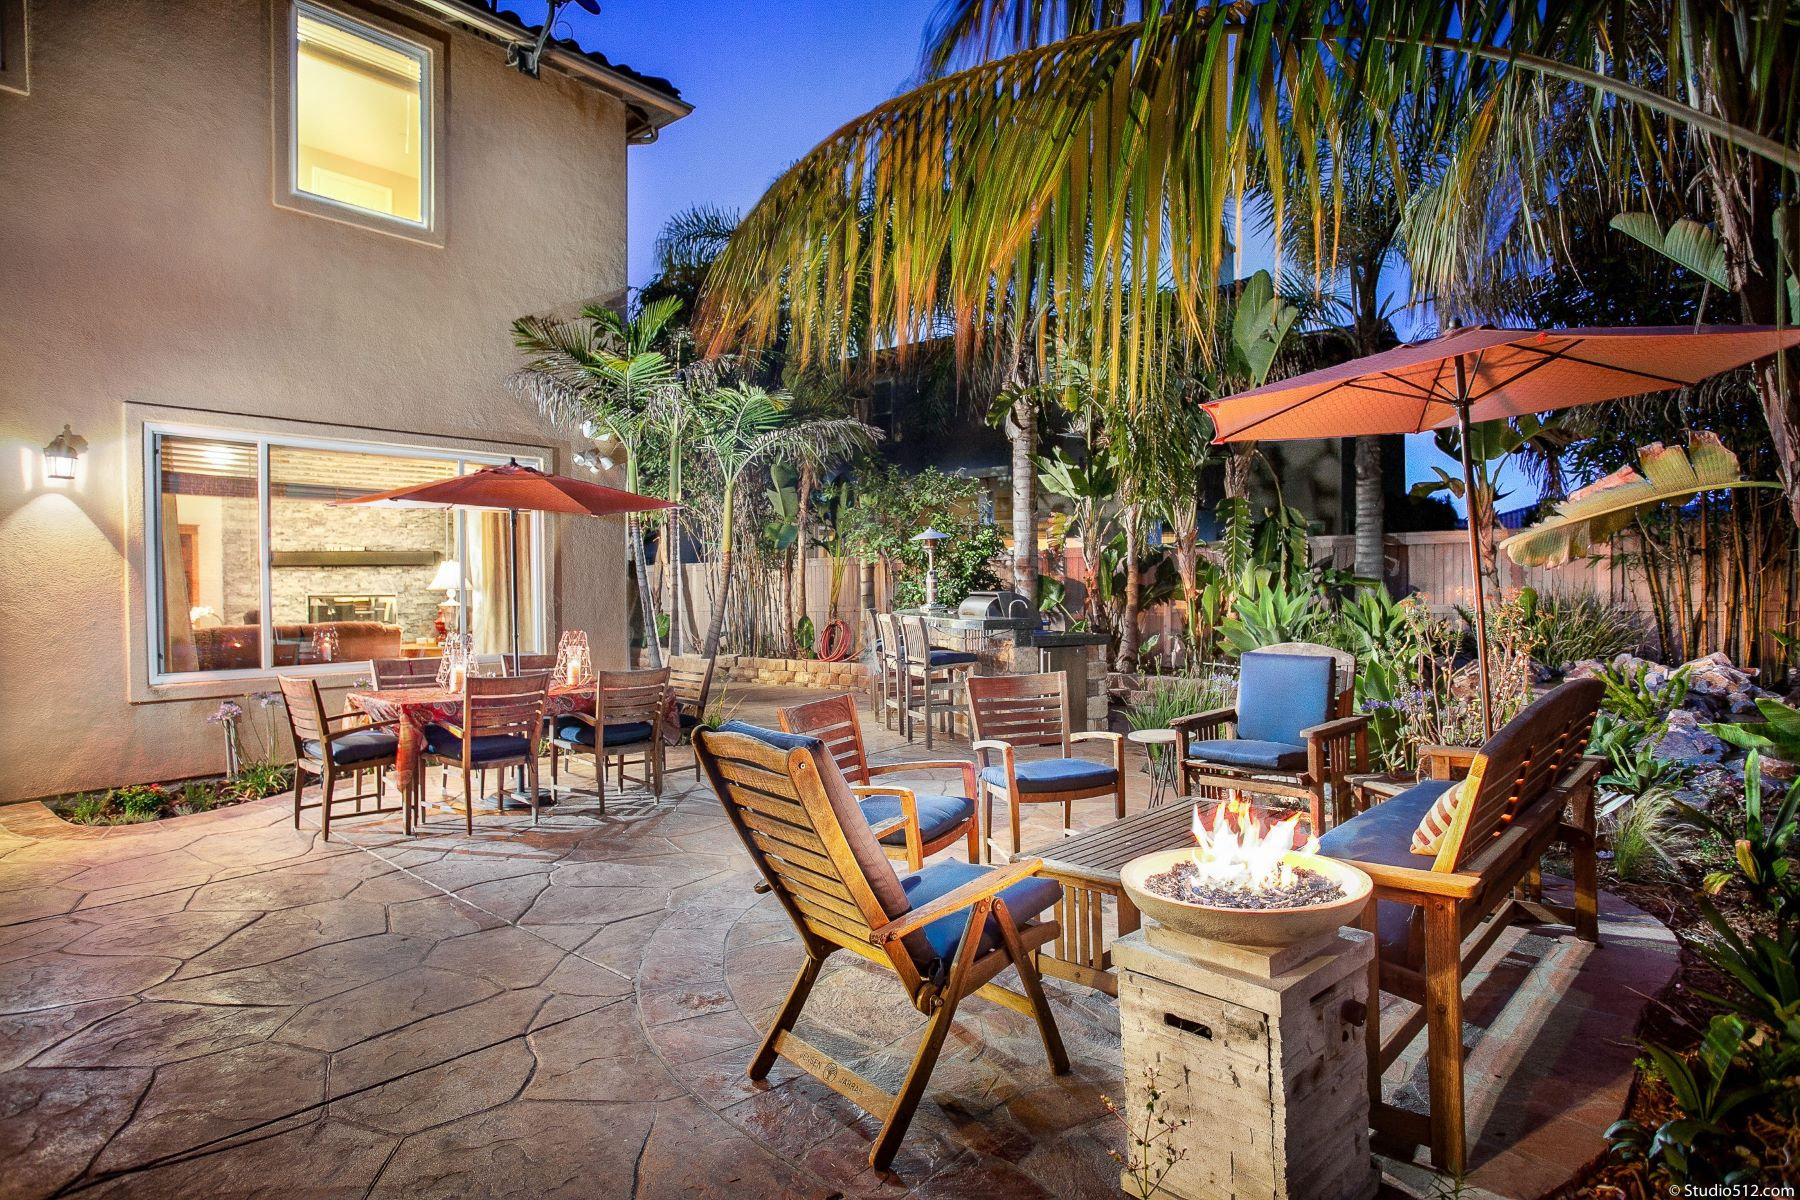 Single Family Homes for Sale at 1727 Azul Vista San Marcos, California 92078 United States